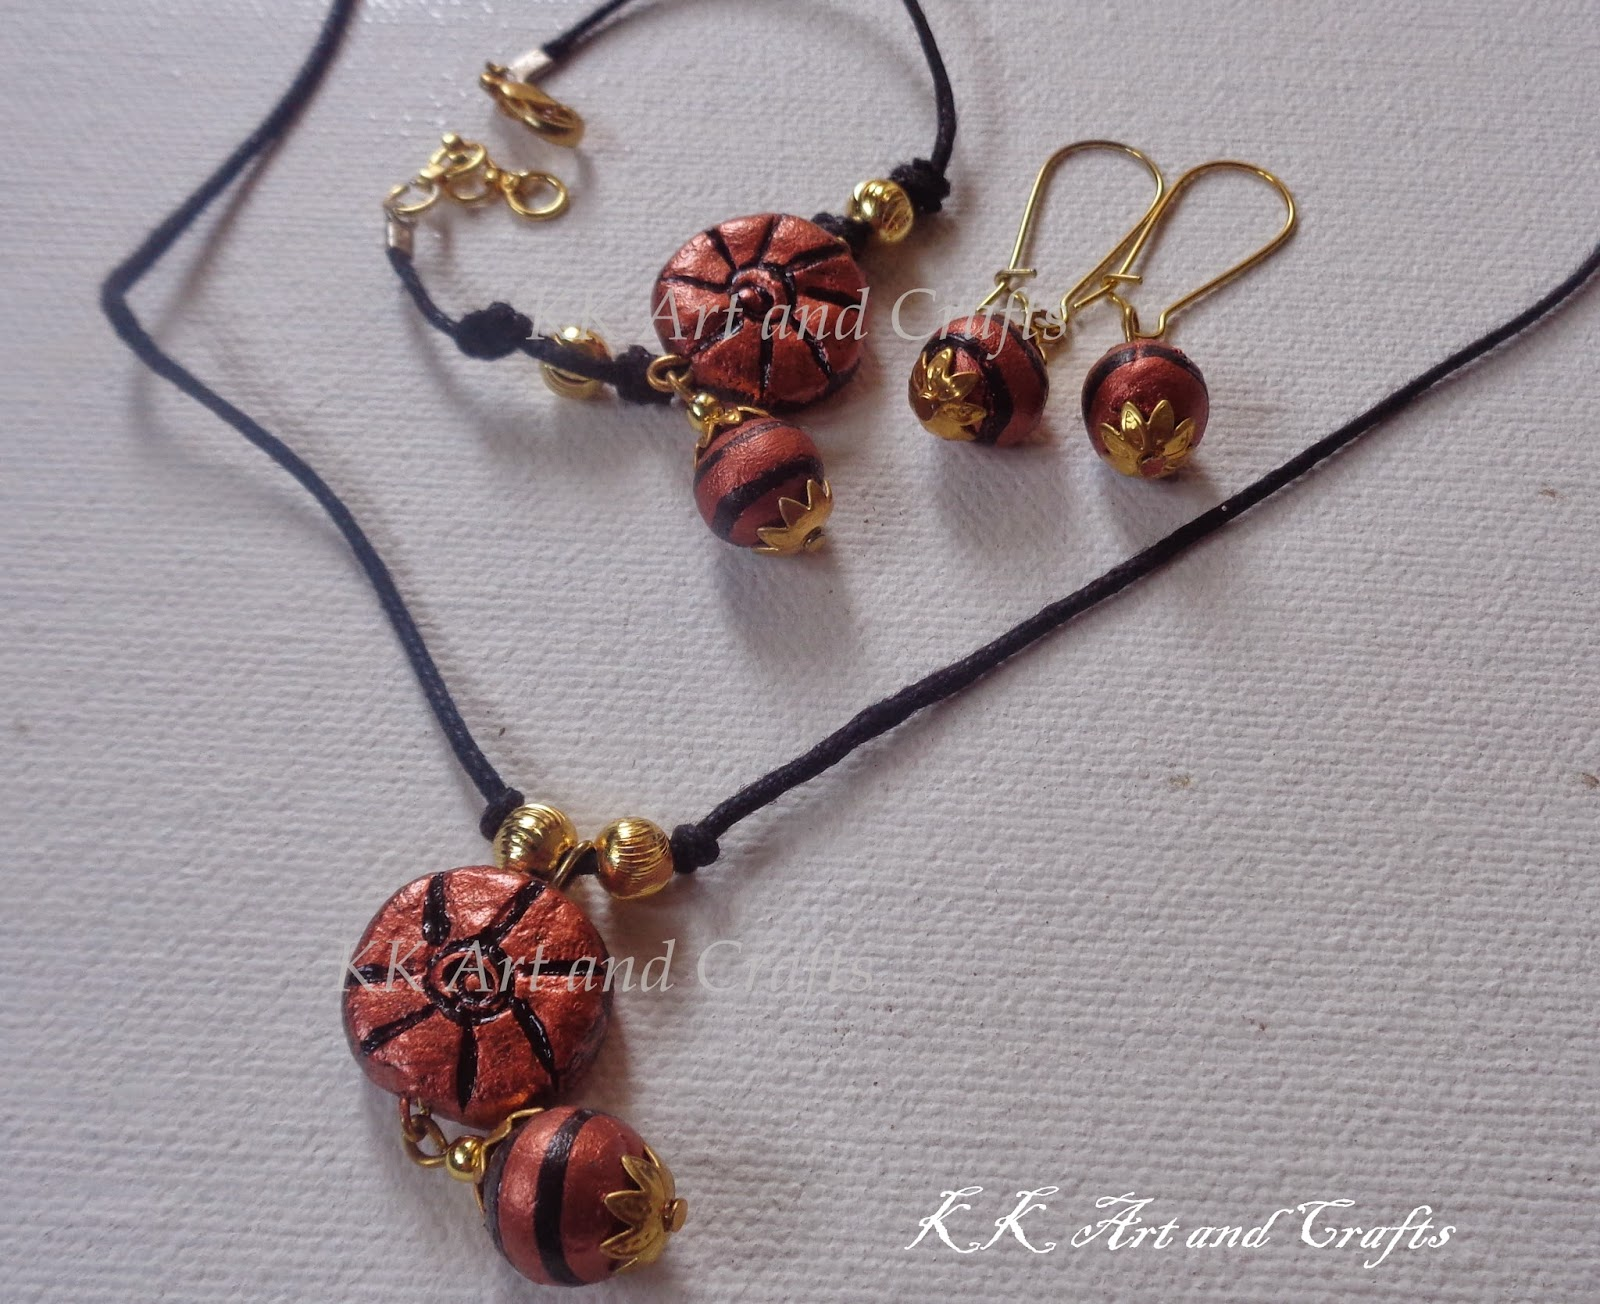 Kk arts and crafts terracotta jewellery making and baking for Arts and crafts workshops near me